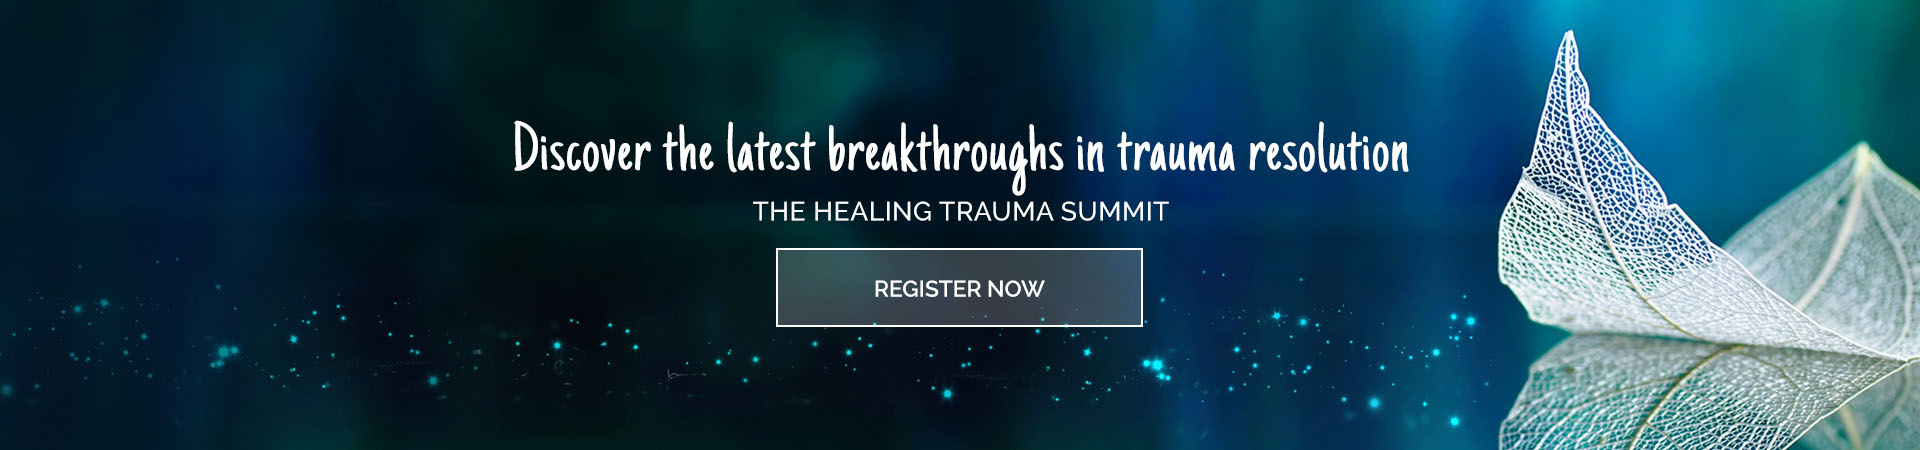 Healing Trauma Summit Opt-in